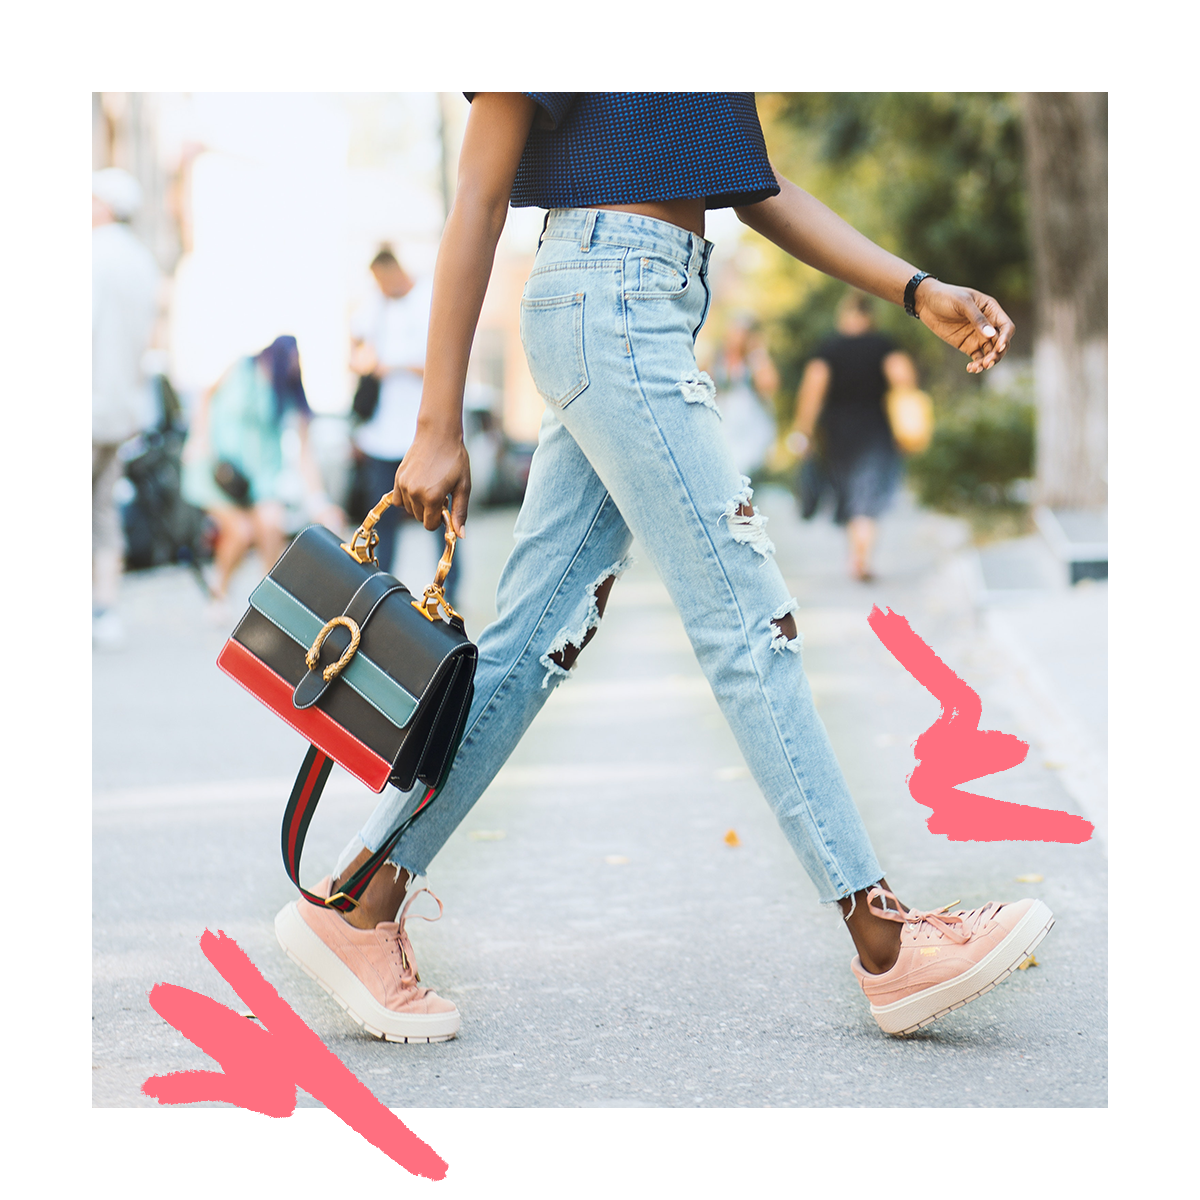 Street style and posts that show movement inspire a feel-good moment